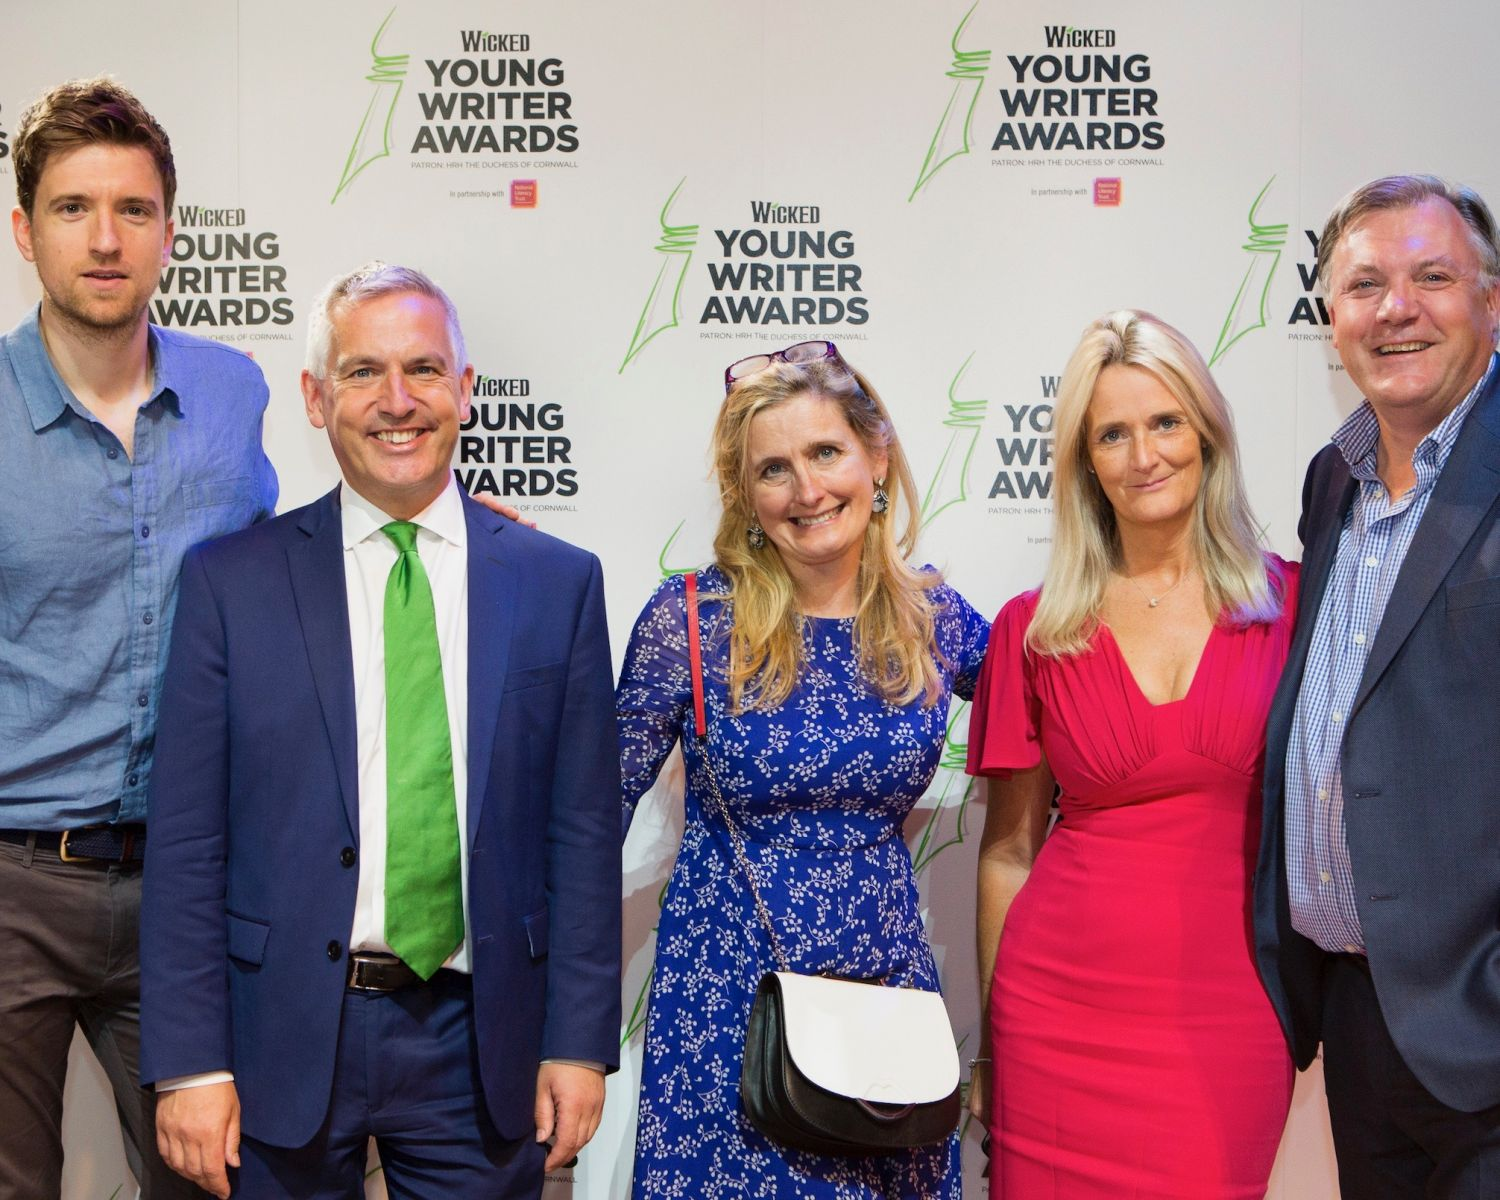 From L-R: Host Greg James, Wicked Young Writer Awards judges Jonathan Douglas, Cressida Cowell, Nicky Cox and Ed Balls Photo Credit: Ellie Kurttz